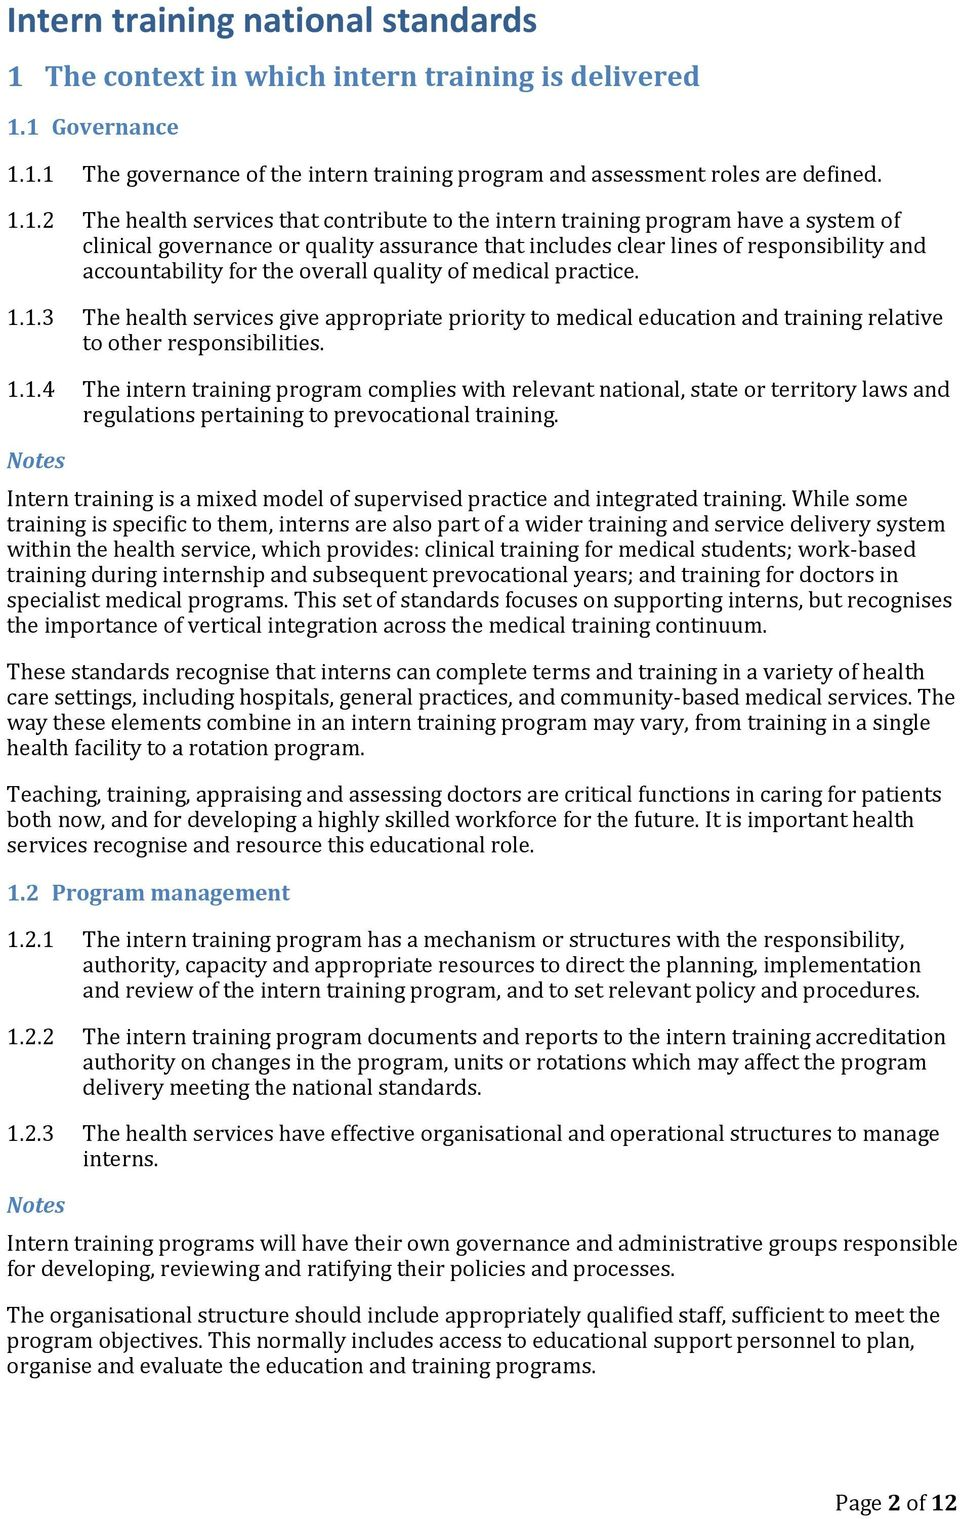 1 Governance 1.1.1 The governance of the intern training program and assessment roles are defined. 1.1.2 The health services that contribute to the intern training program have a system of clinical